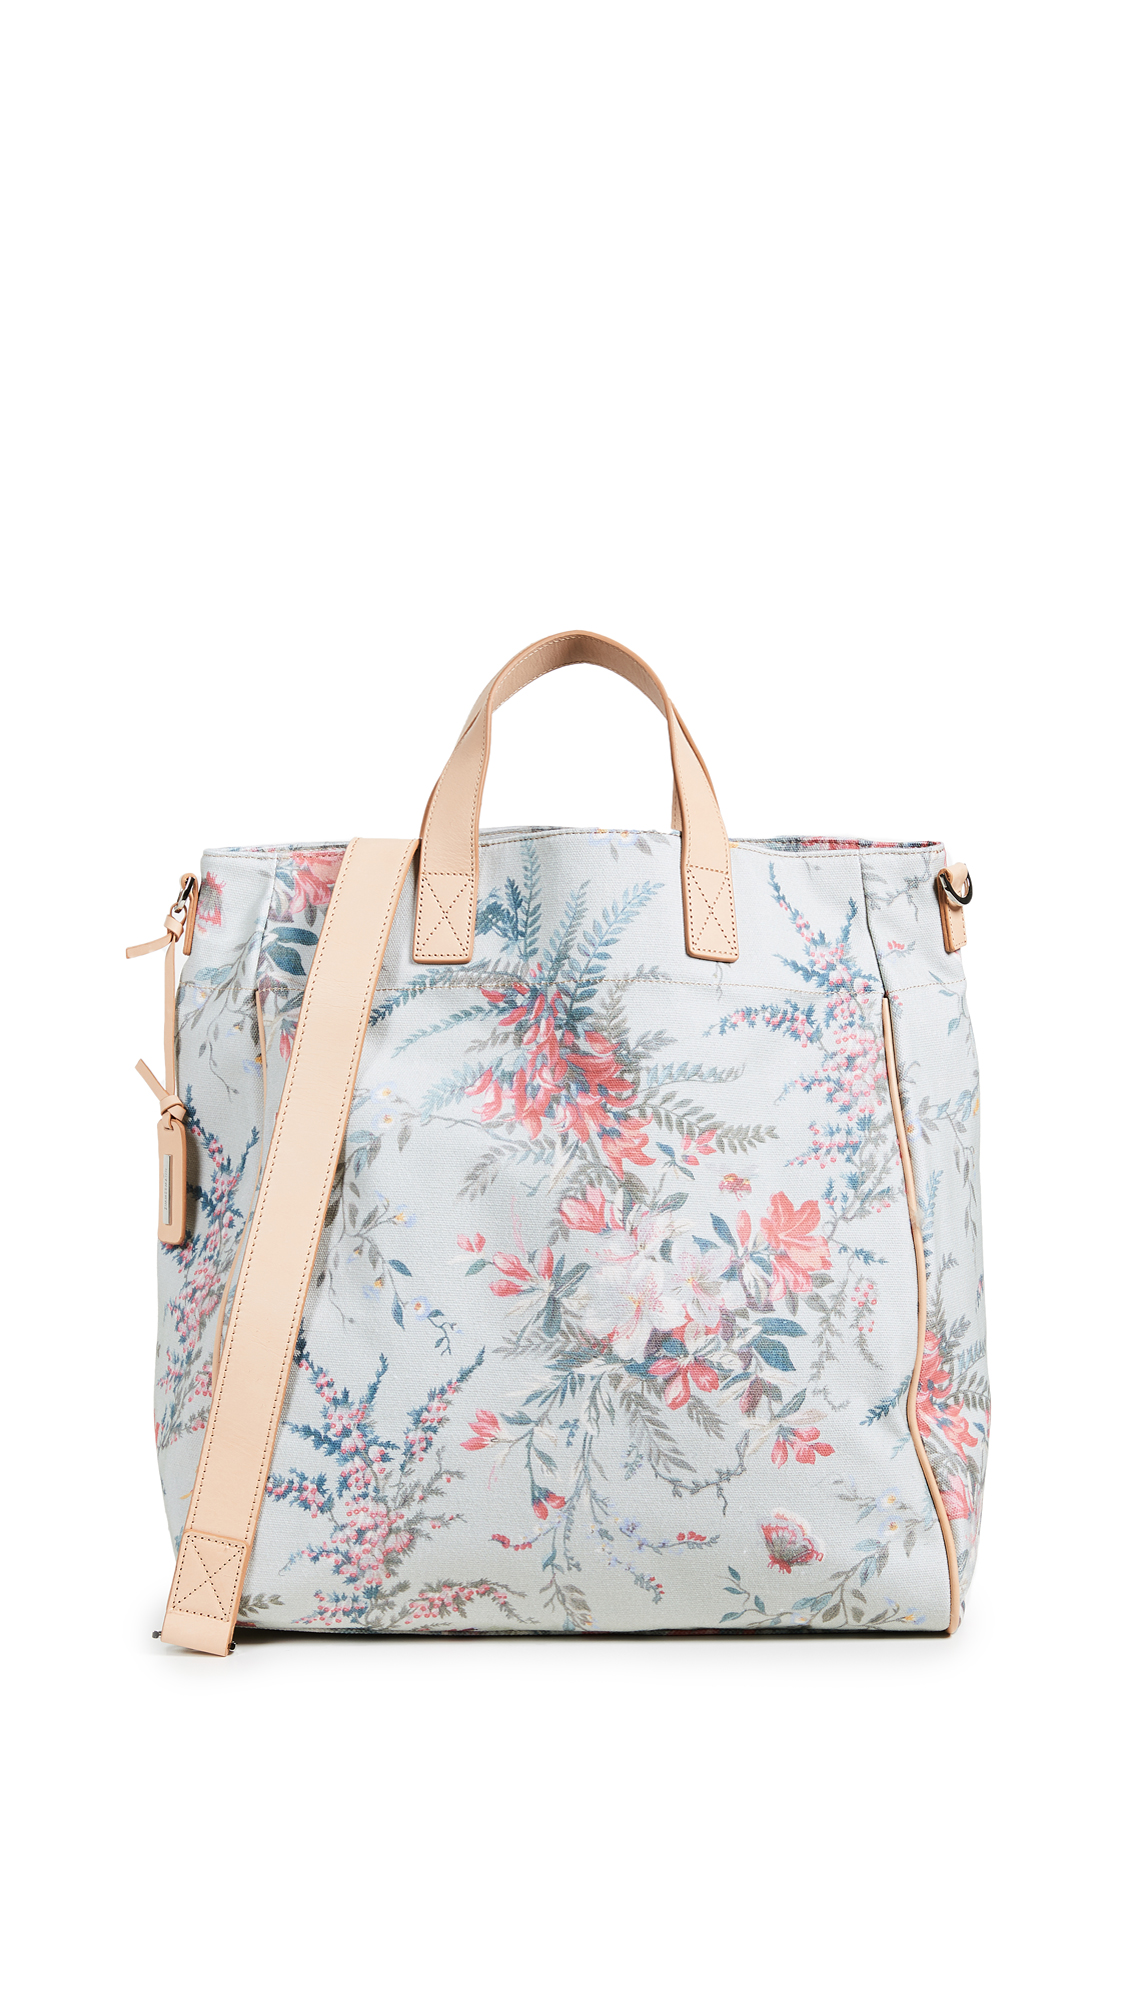 Zimmermann Beach Bag